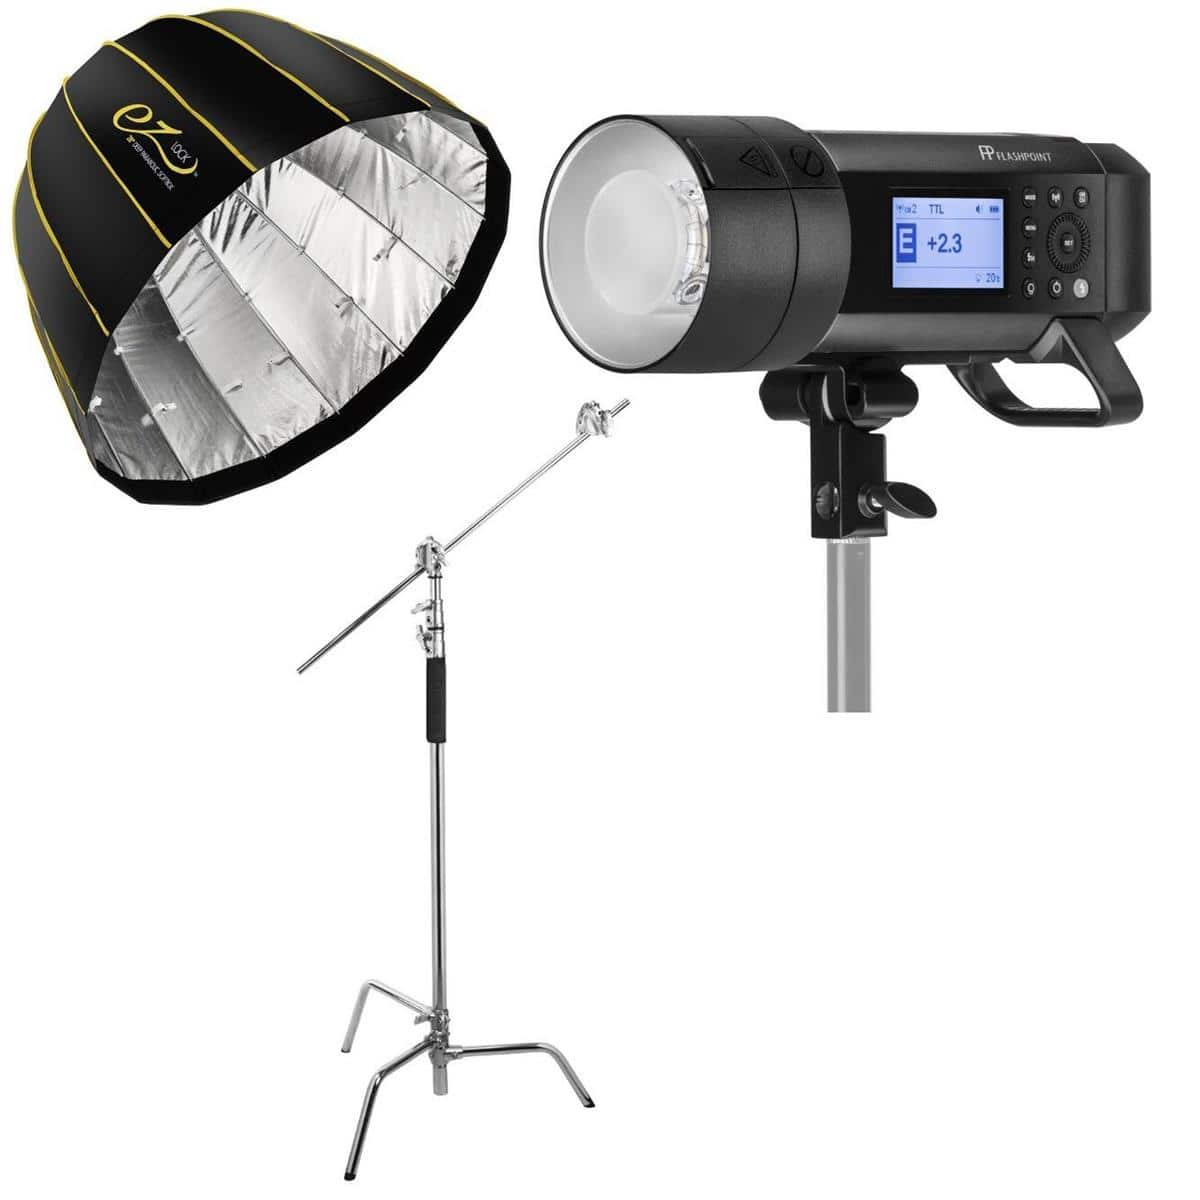 "Flashpoint XPLOR 400Pro TTL (Godox Ad400 pro) + EZ Lock 28"", 34"", or 48"" Softbox + 10' C-Stand $579"